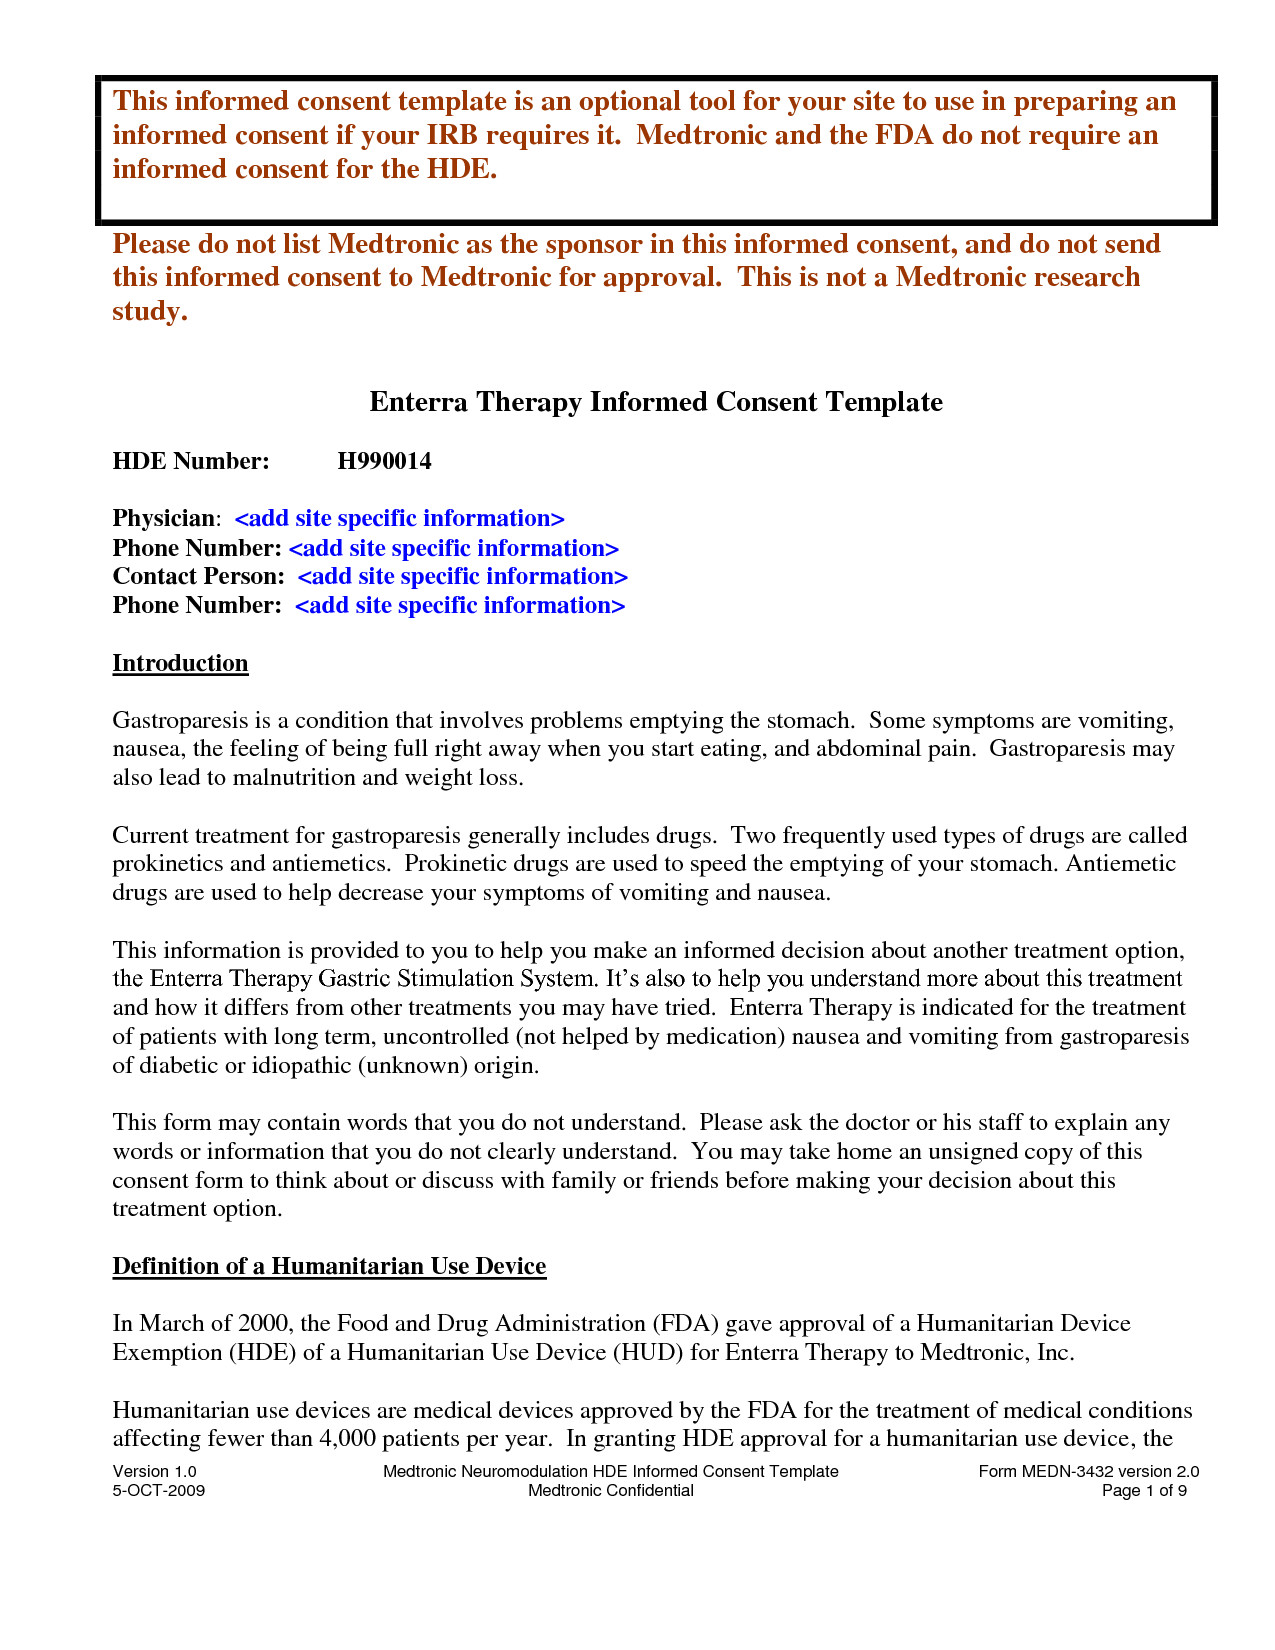 post psychotherapy informed consent template 307992